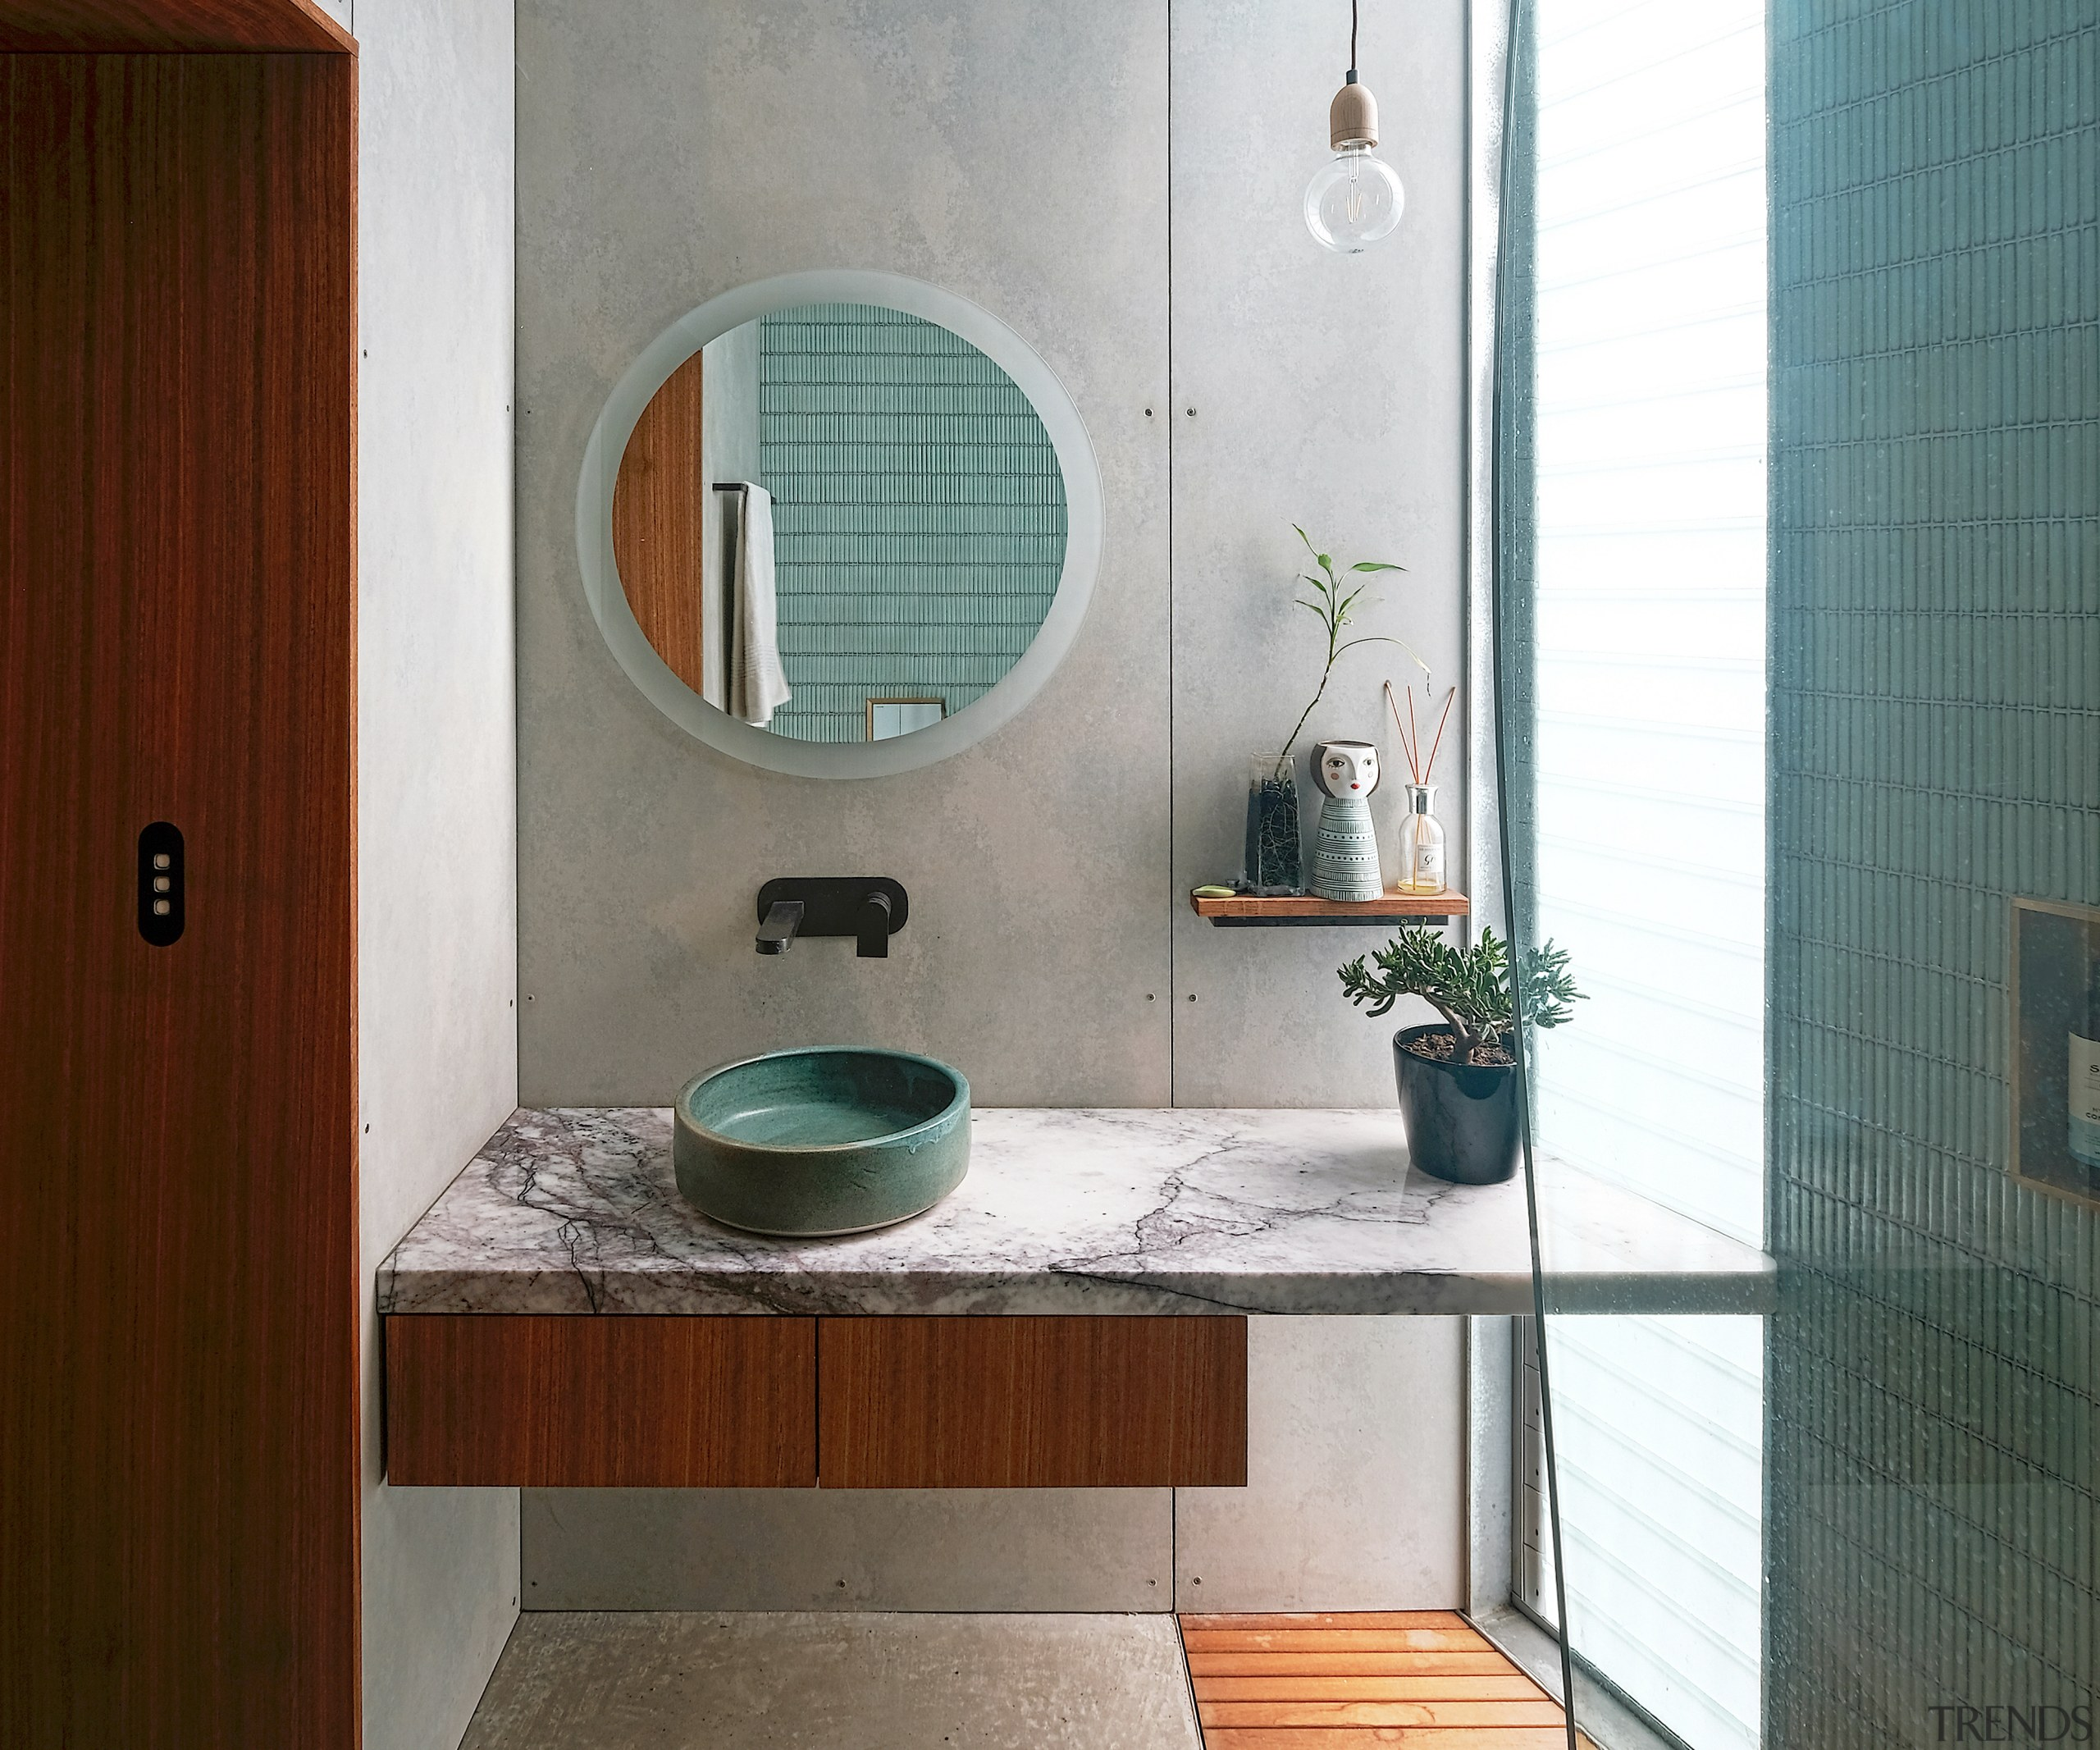 A hand-thrown vanity basin finds an echo in